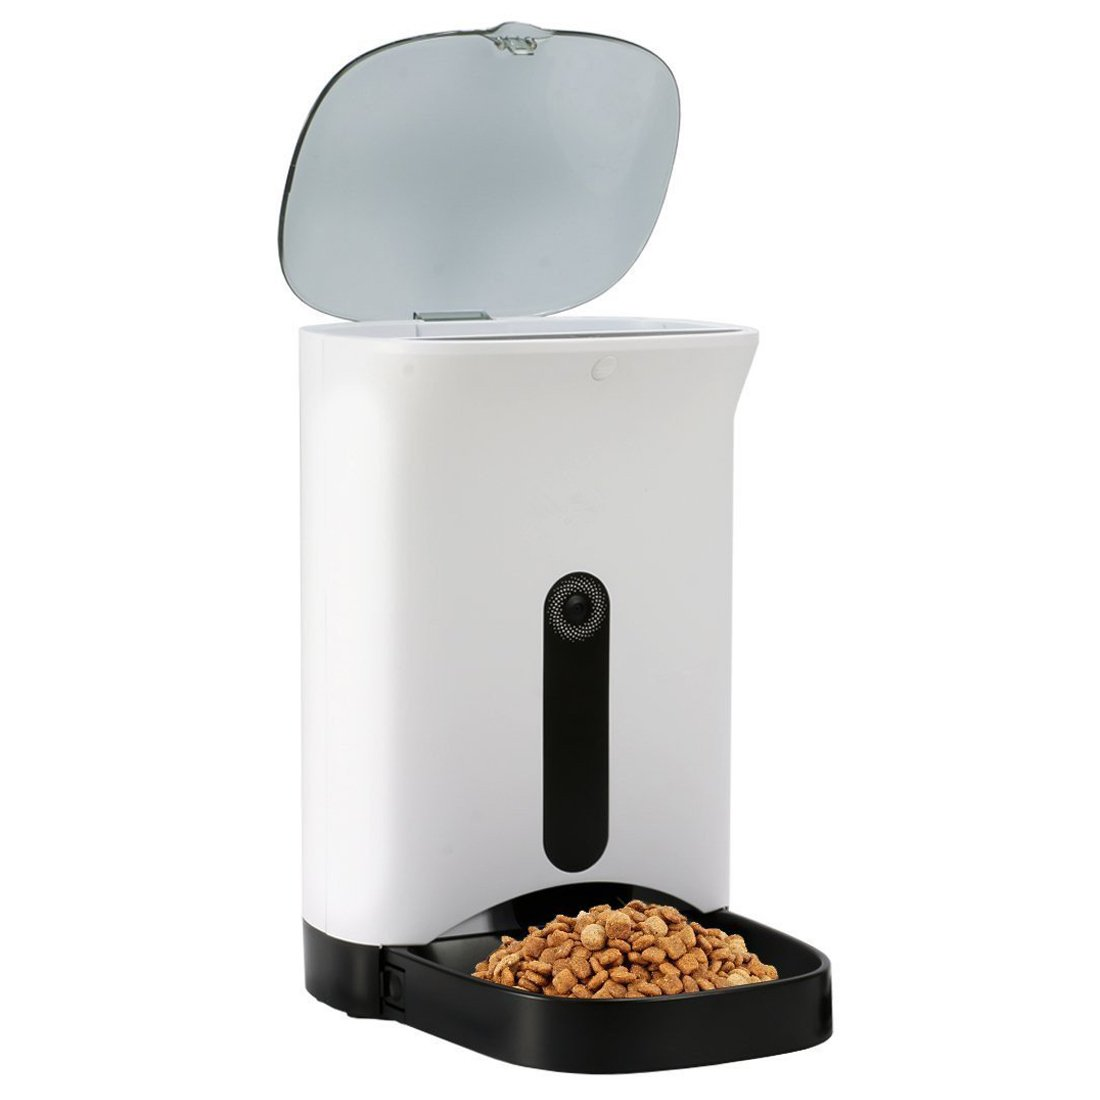 Automatic Smart APP Pet Feeder for Dog or Cat, Automatic APP Feeder, Smart Feeder Automatic Pet Feeding with Your Phone